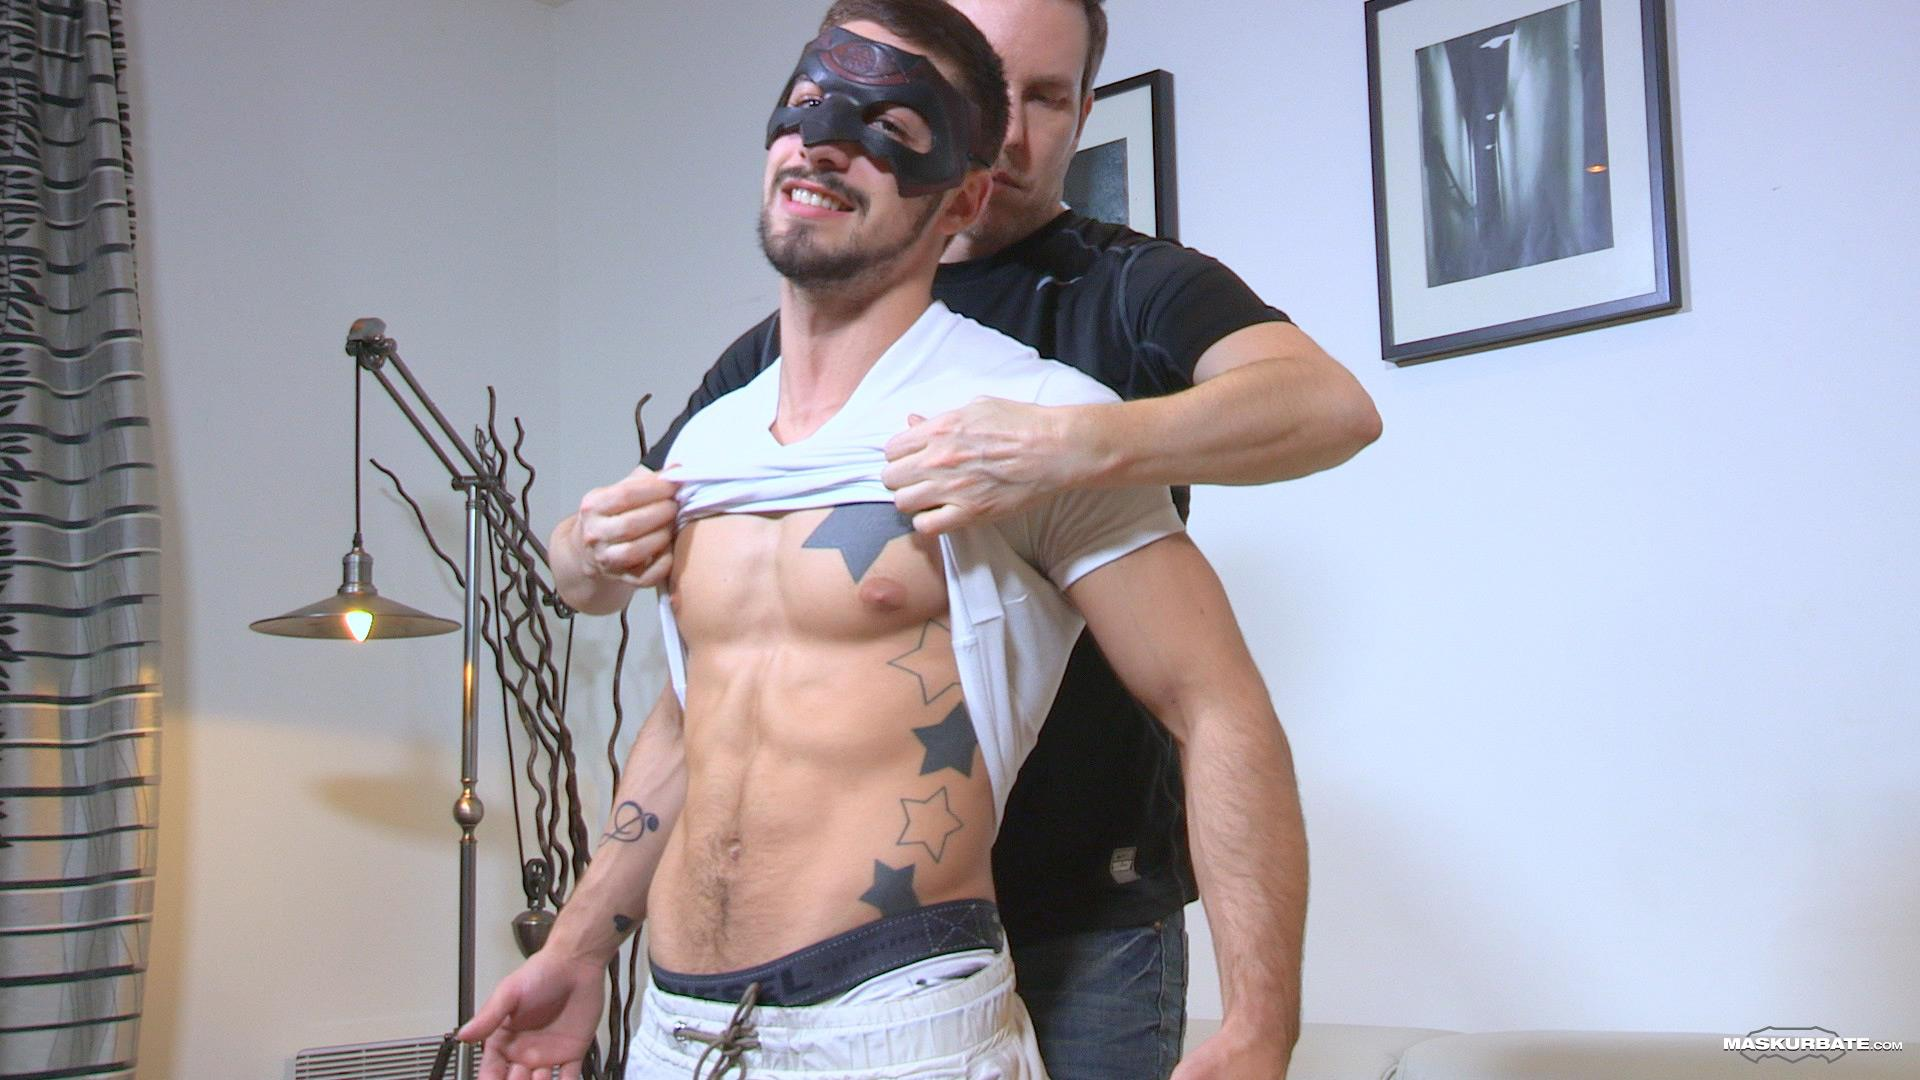 Maskurbate-Carl-Straight-Muscle-Jock-With-A-Big-Cock-Amateur-Gay-Porn-01 Straight Muscle Hunk Gets His First Blow Job From Another Guy